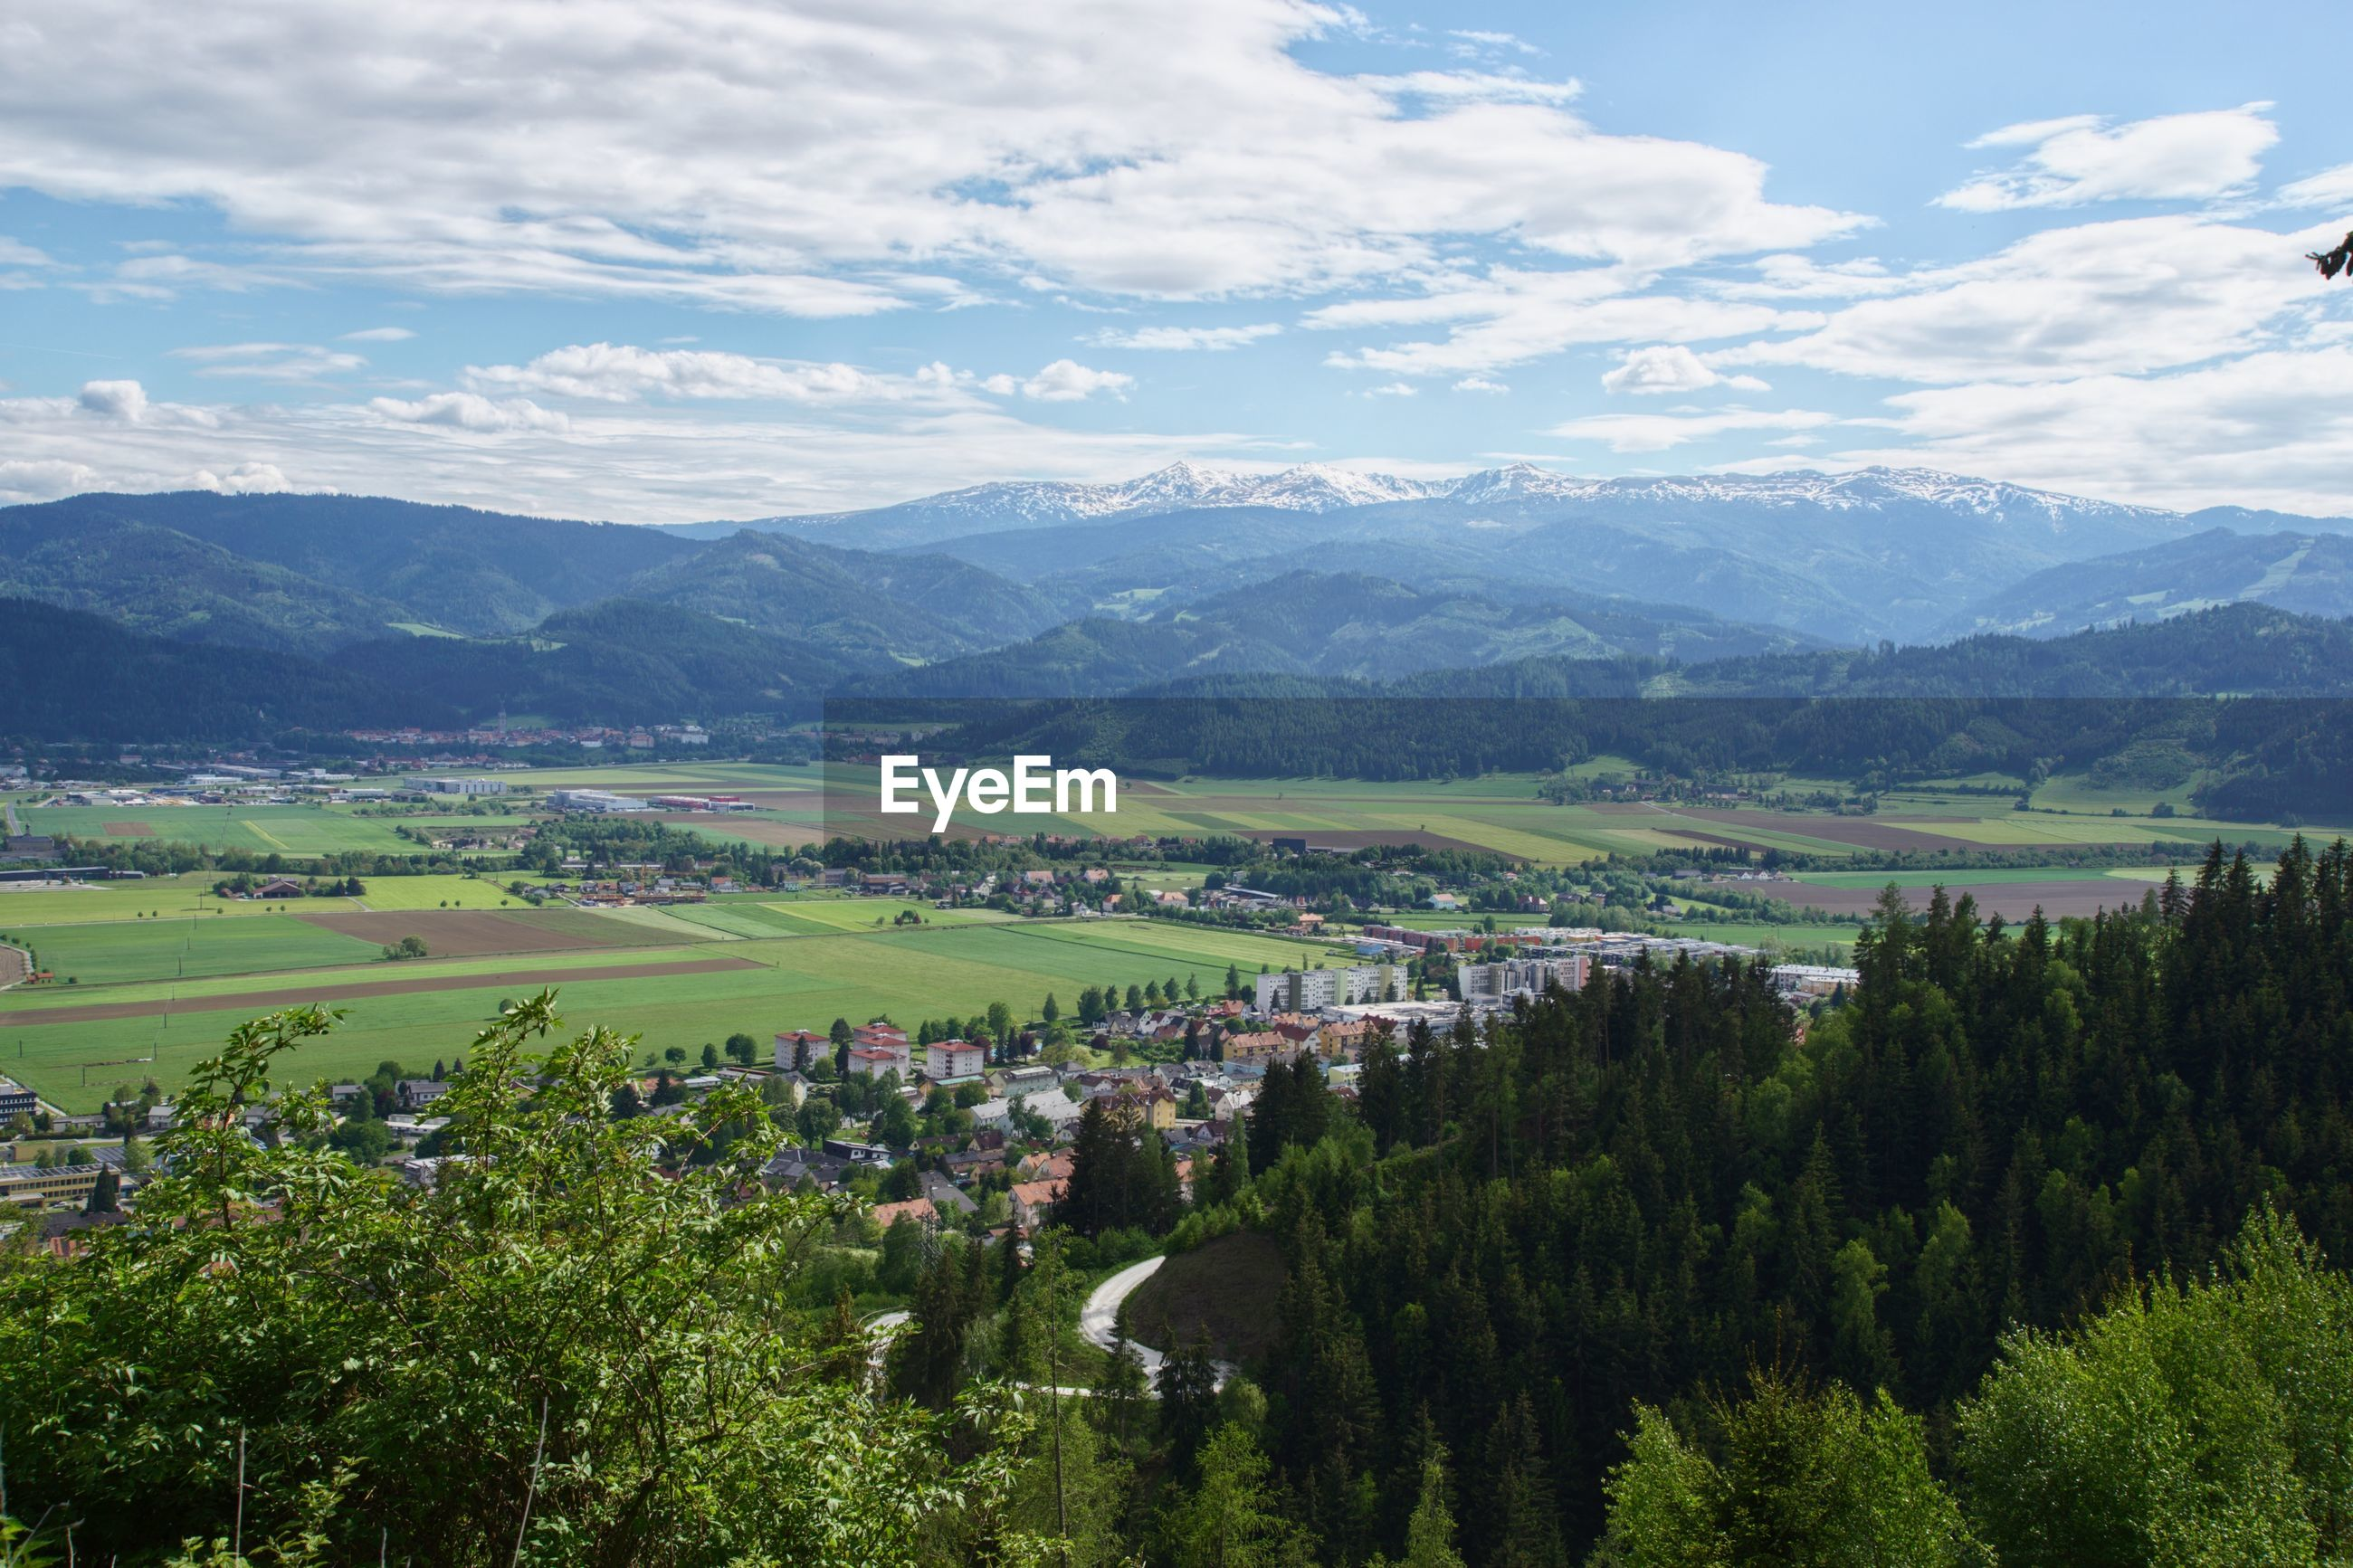 Scenic view of townscape by mountains against sky